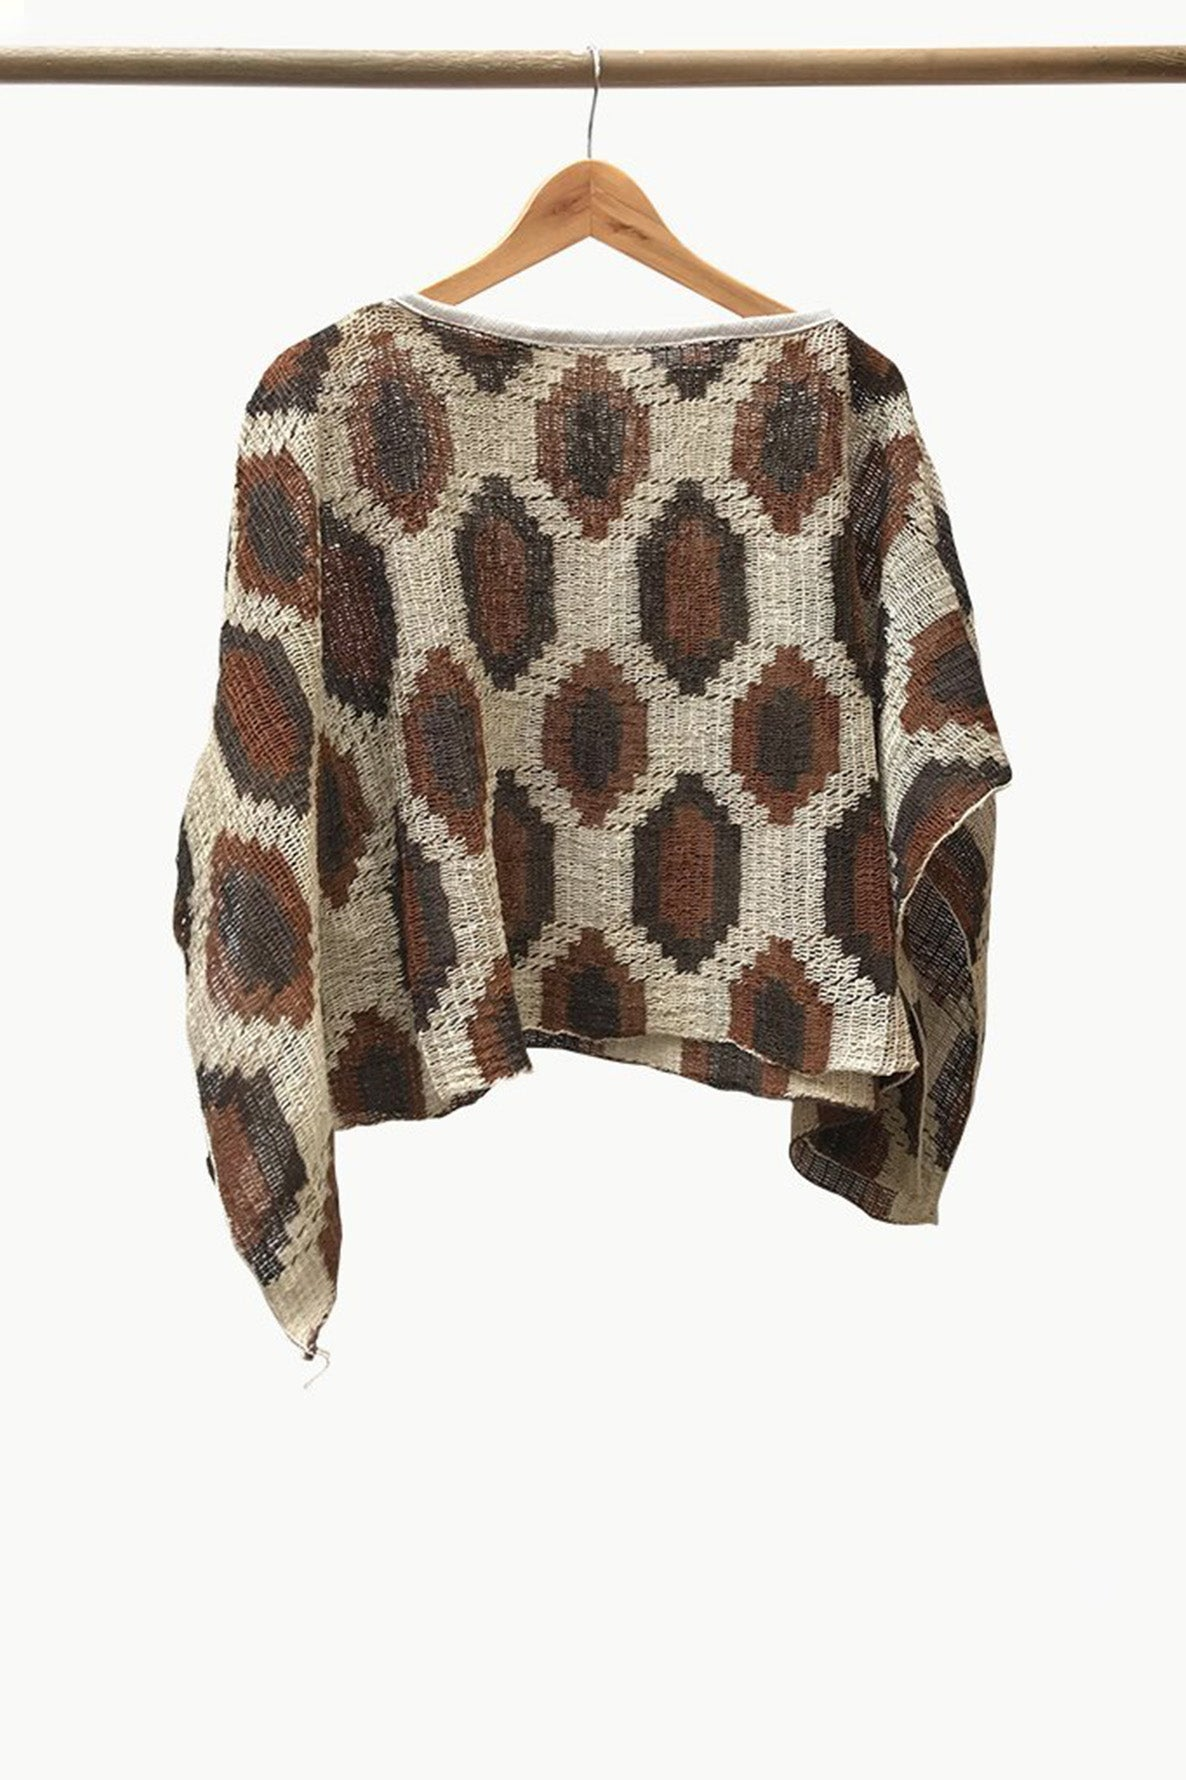 Cream Chaguar Poncho with Brown Hexagonal Design Details.